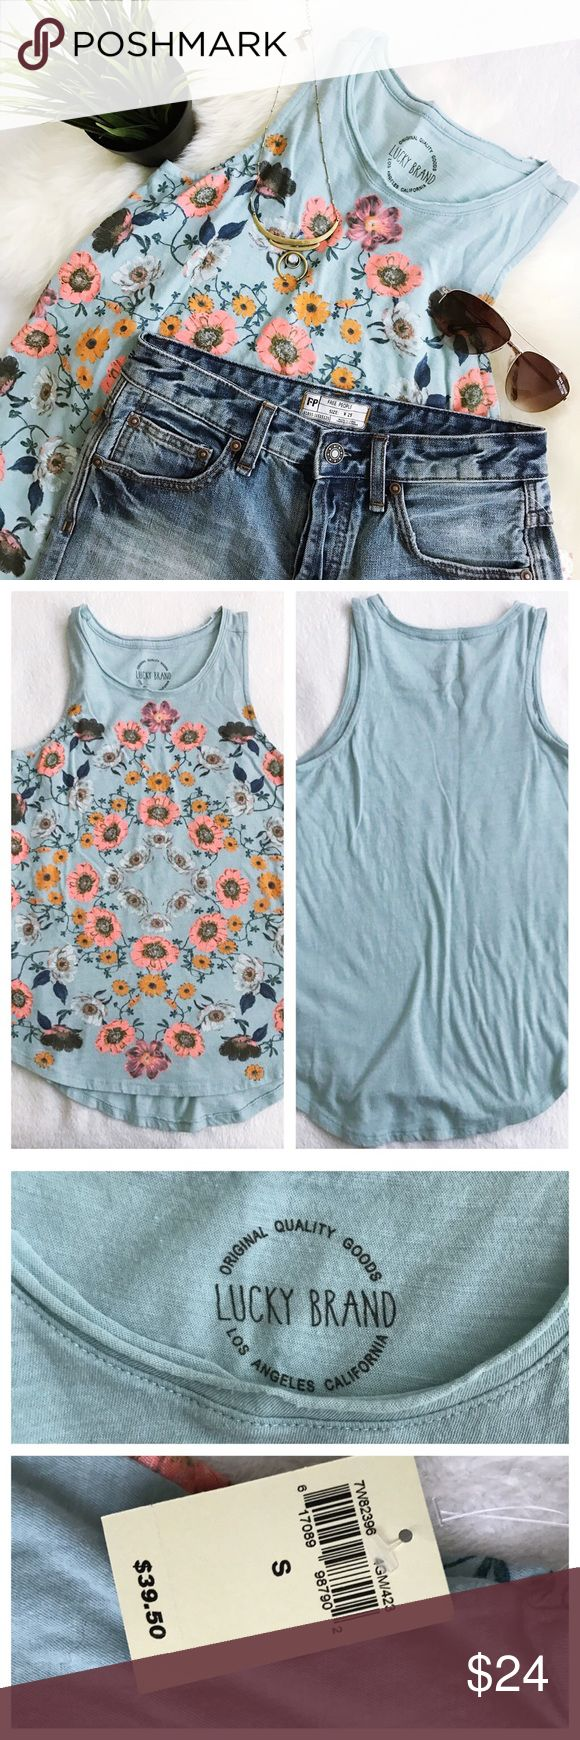 Lucky Brand Flower Surf Tank size small NWT NWT no flaws. 100% super soft cotton Color is called gray mist, however it is a cornflower blue green Last images are stock photos for reference 🚫trades 🚫modeling requests  🚫🅿️🅿️ 👍🏻Reasonable offers welcome! Lucky Brand Tops Tank Tops